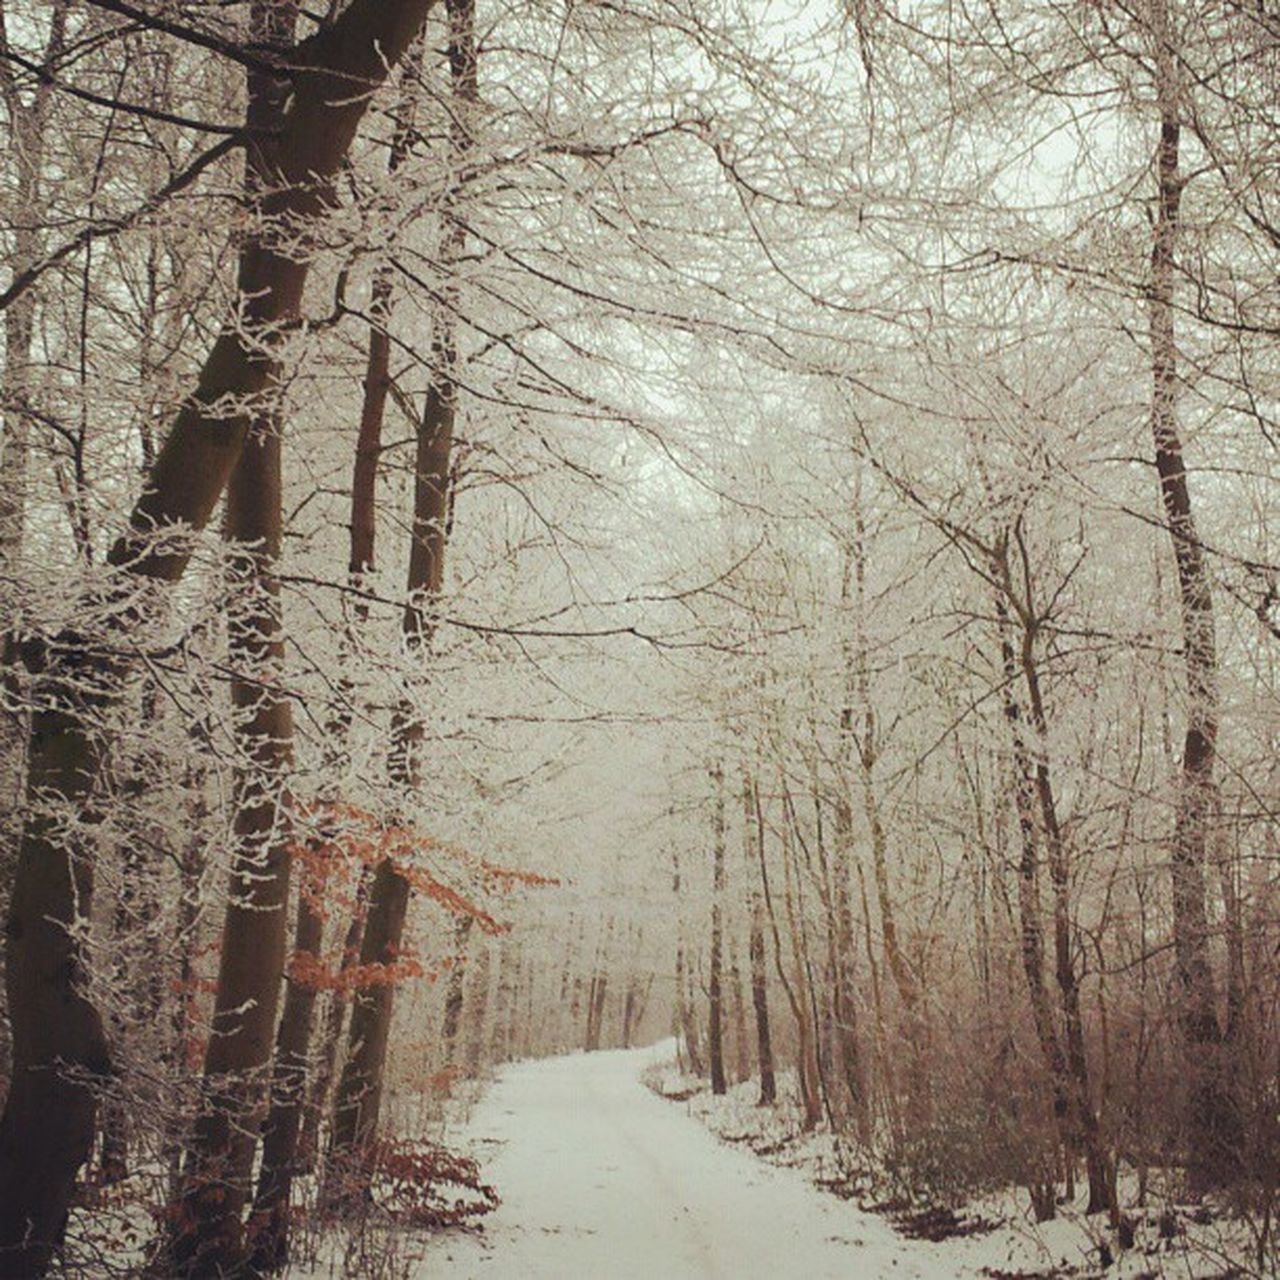 bare tree, winter, nature, tree, cold temperature, snow, tranquility, no people, tranquil scene, day, branch, beauty in nature, forest, outdoors, scenics